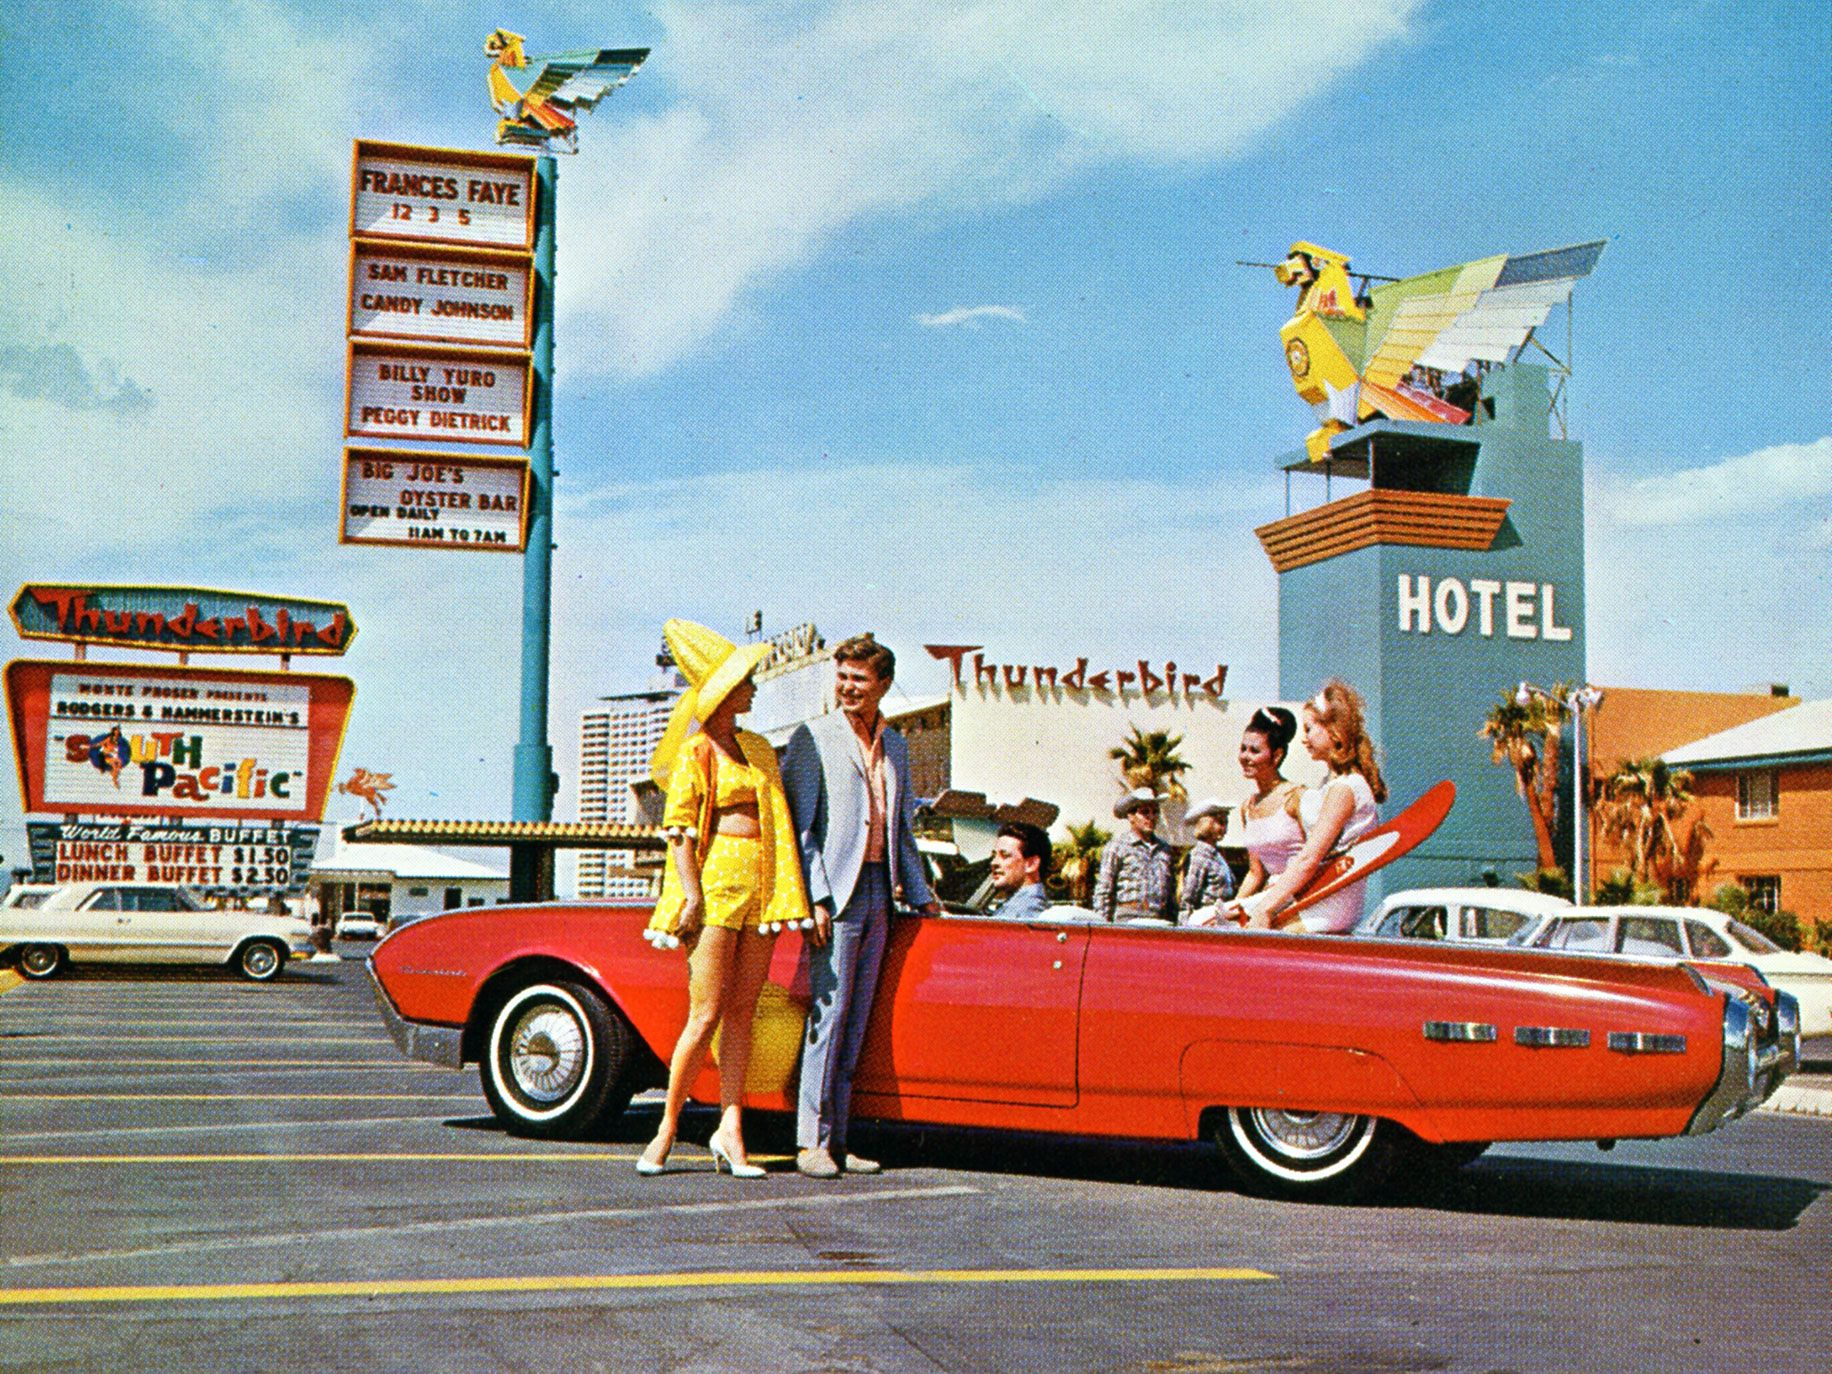 A photo showing the Thunderbird Hotel in Las Vegas is one of the many pieces of industry images that make up Greetings from Las Vegas.